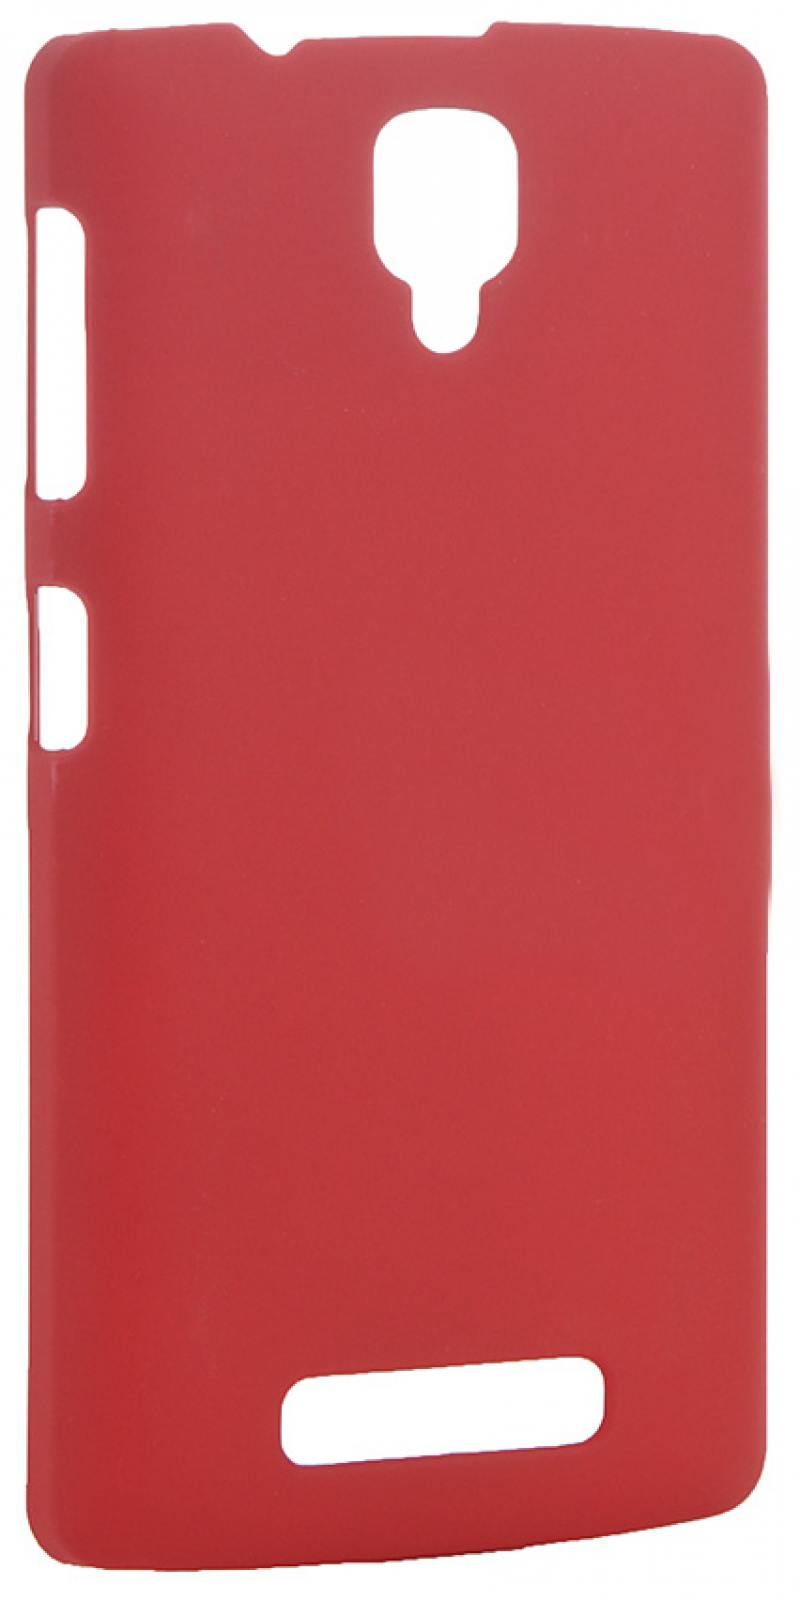 Чехол-накладка для Lenovo A1000 Pulsar CLIPCASE PC Soft-Touch Red клип-кейс, пластик soft-touch все цены